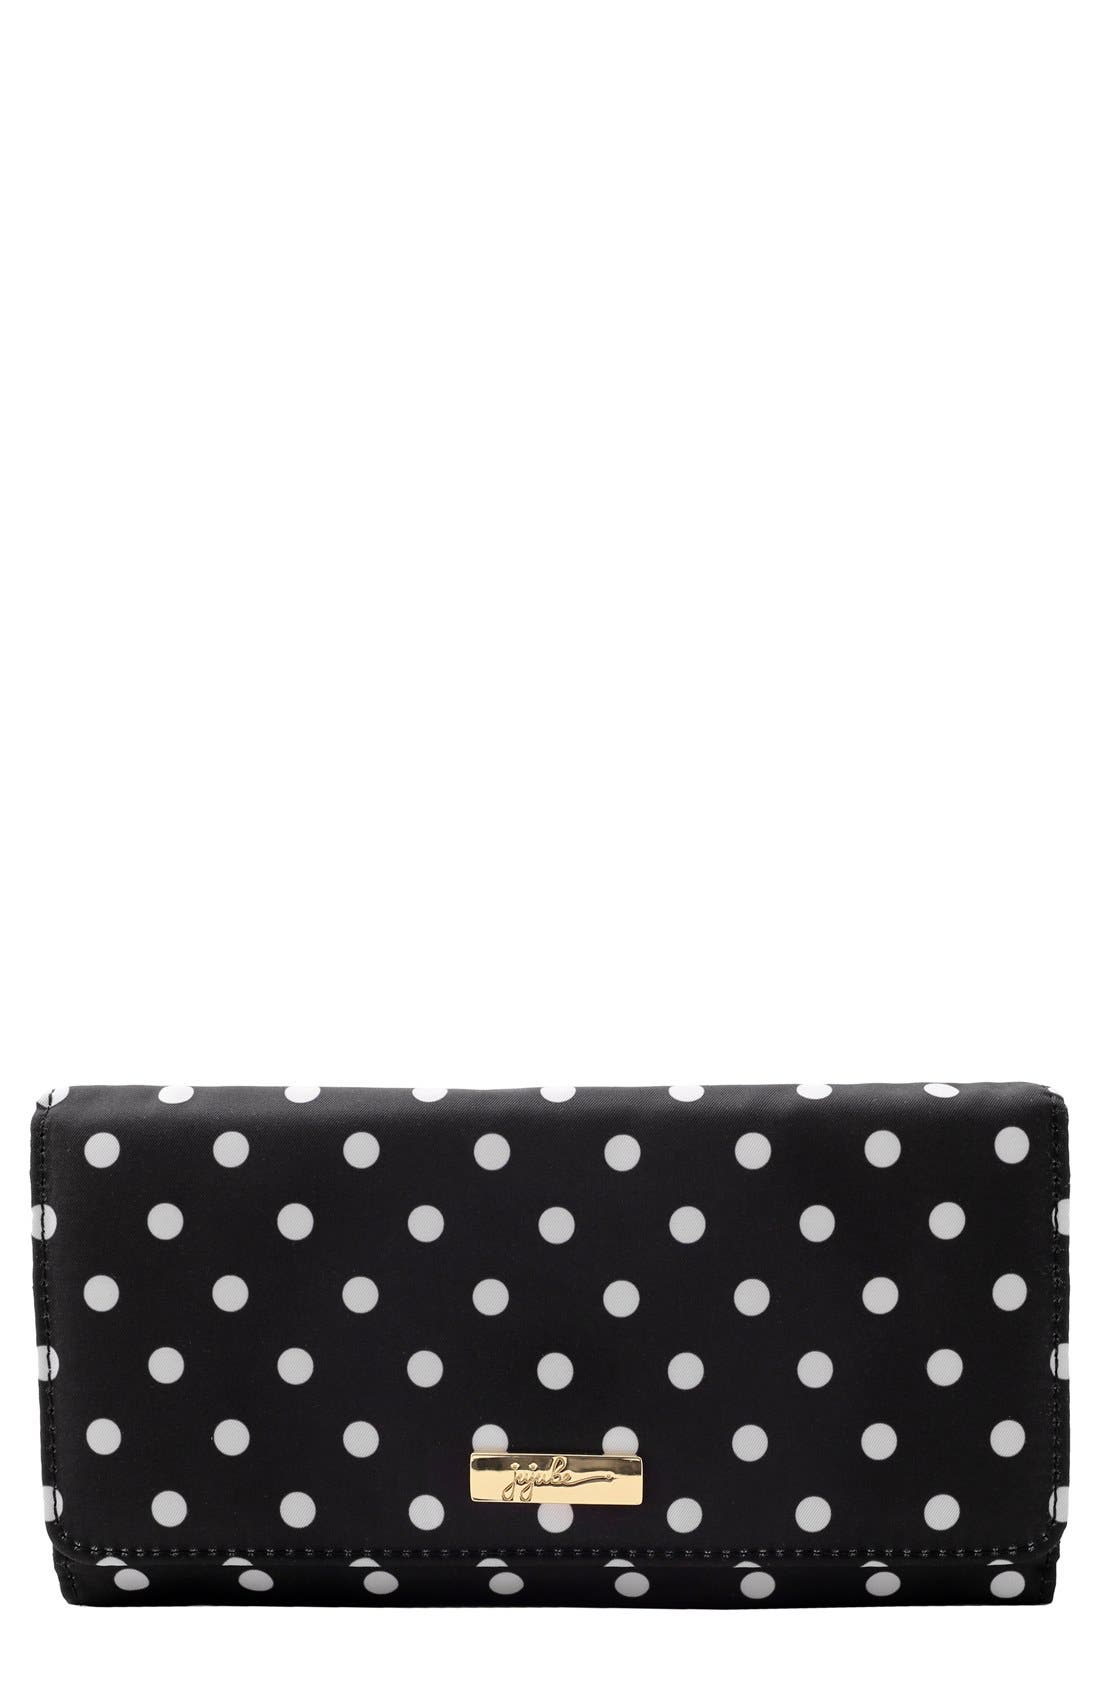 Legacy Be Rich Trifold Clutch Wallet,                             Main thumbnail 1, color,                             013